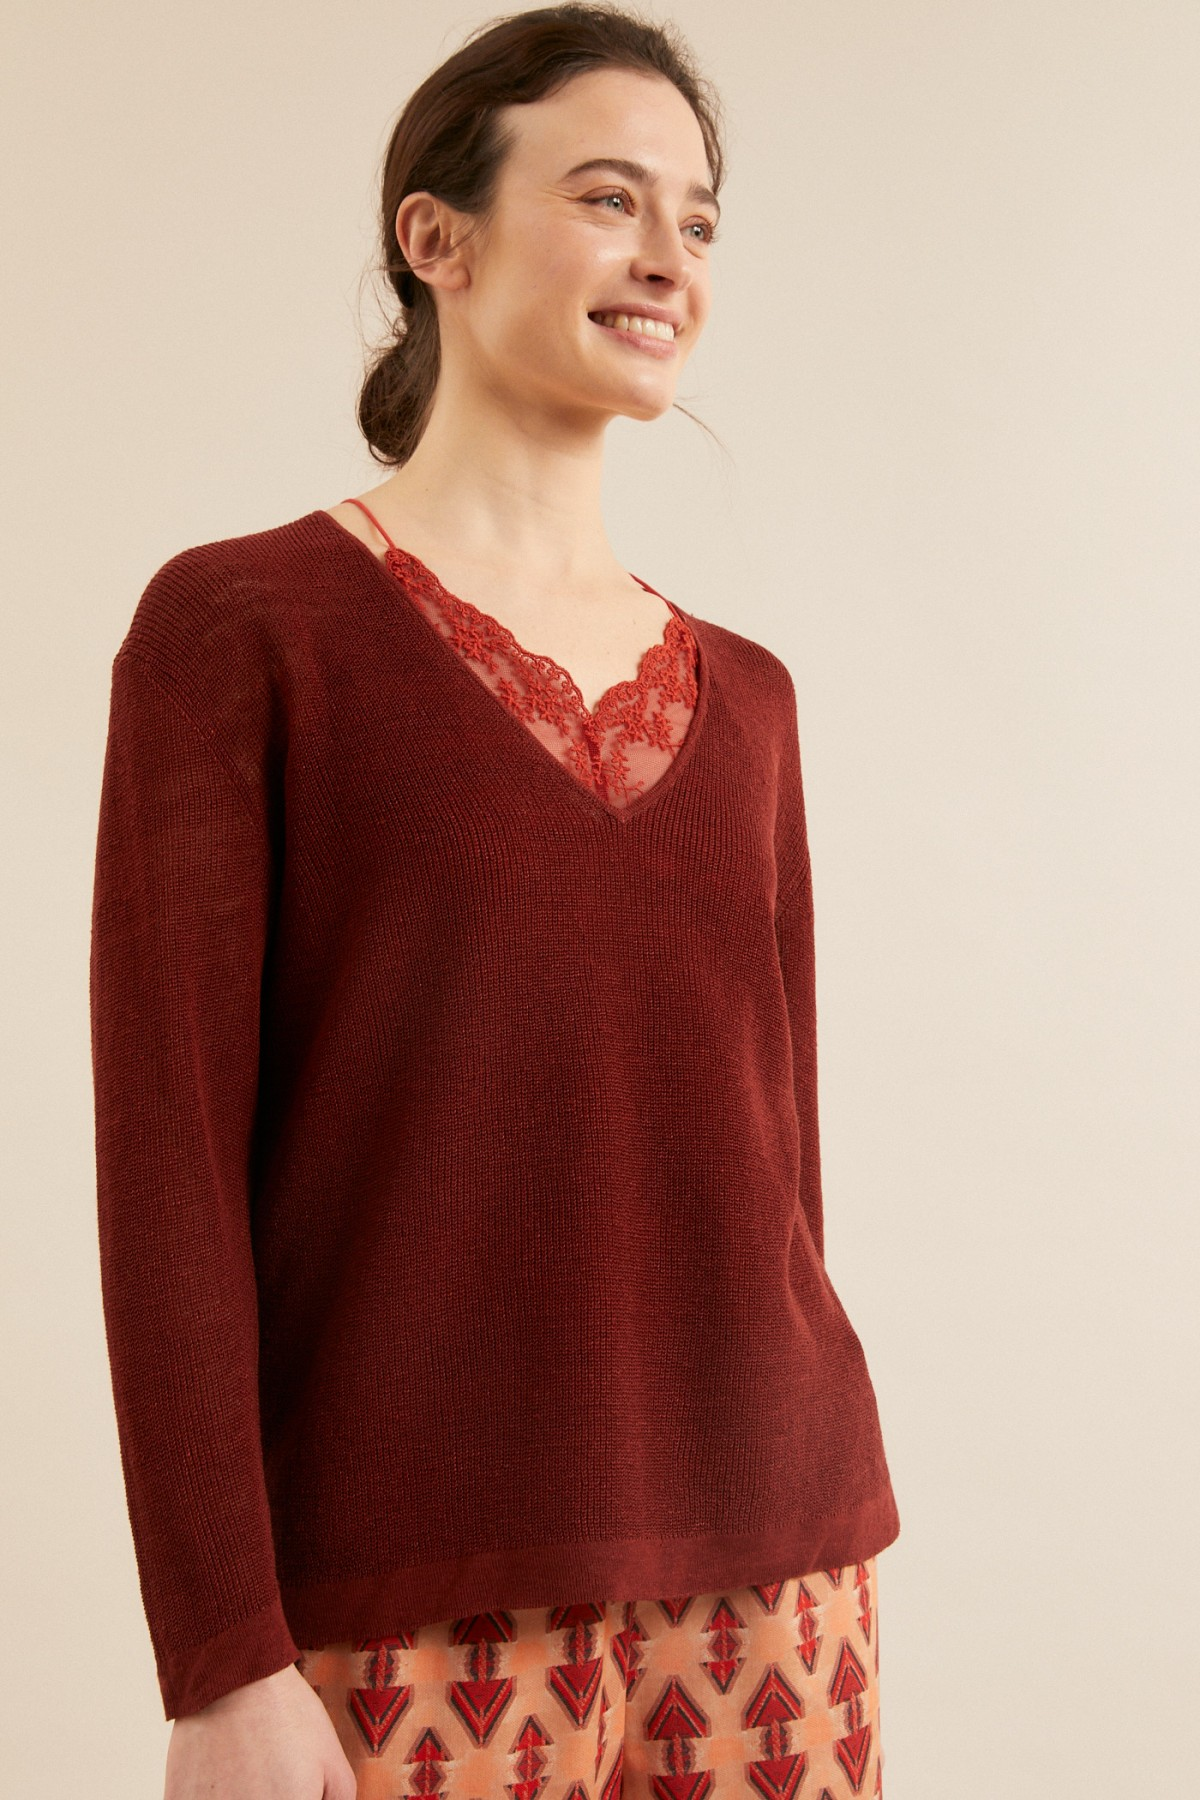 PULLOVER with V-neck made of hemp